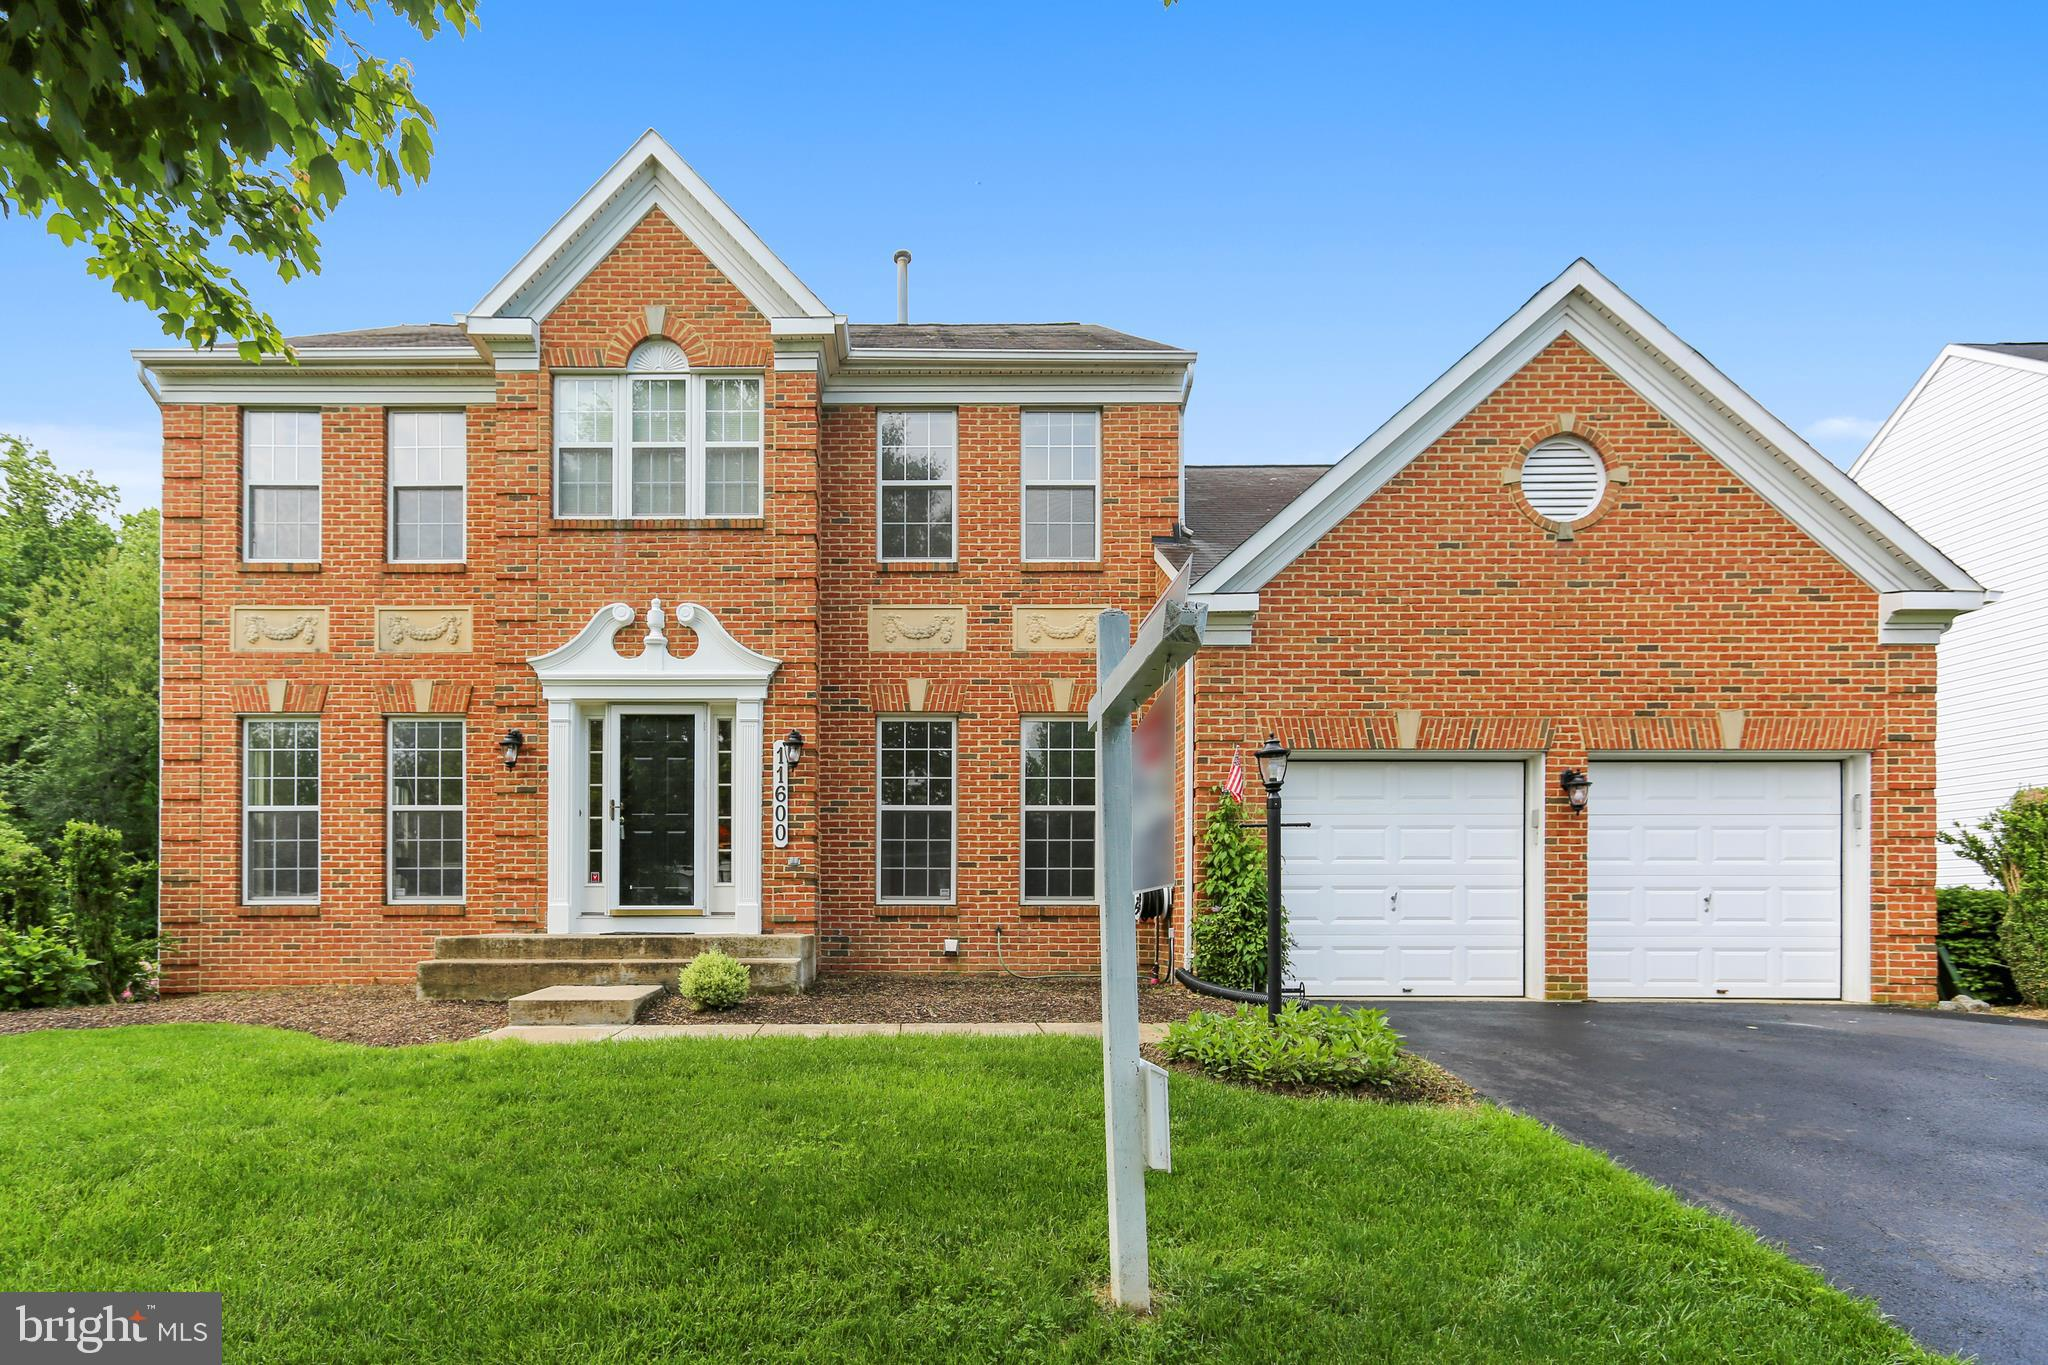 11600 SENECA FOREST CIRCLE, GERMANTOWN, MD 20876